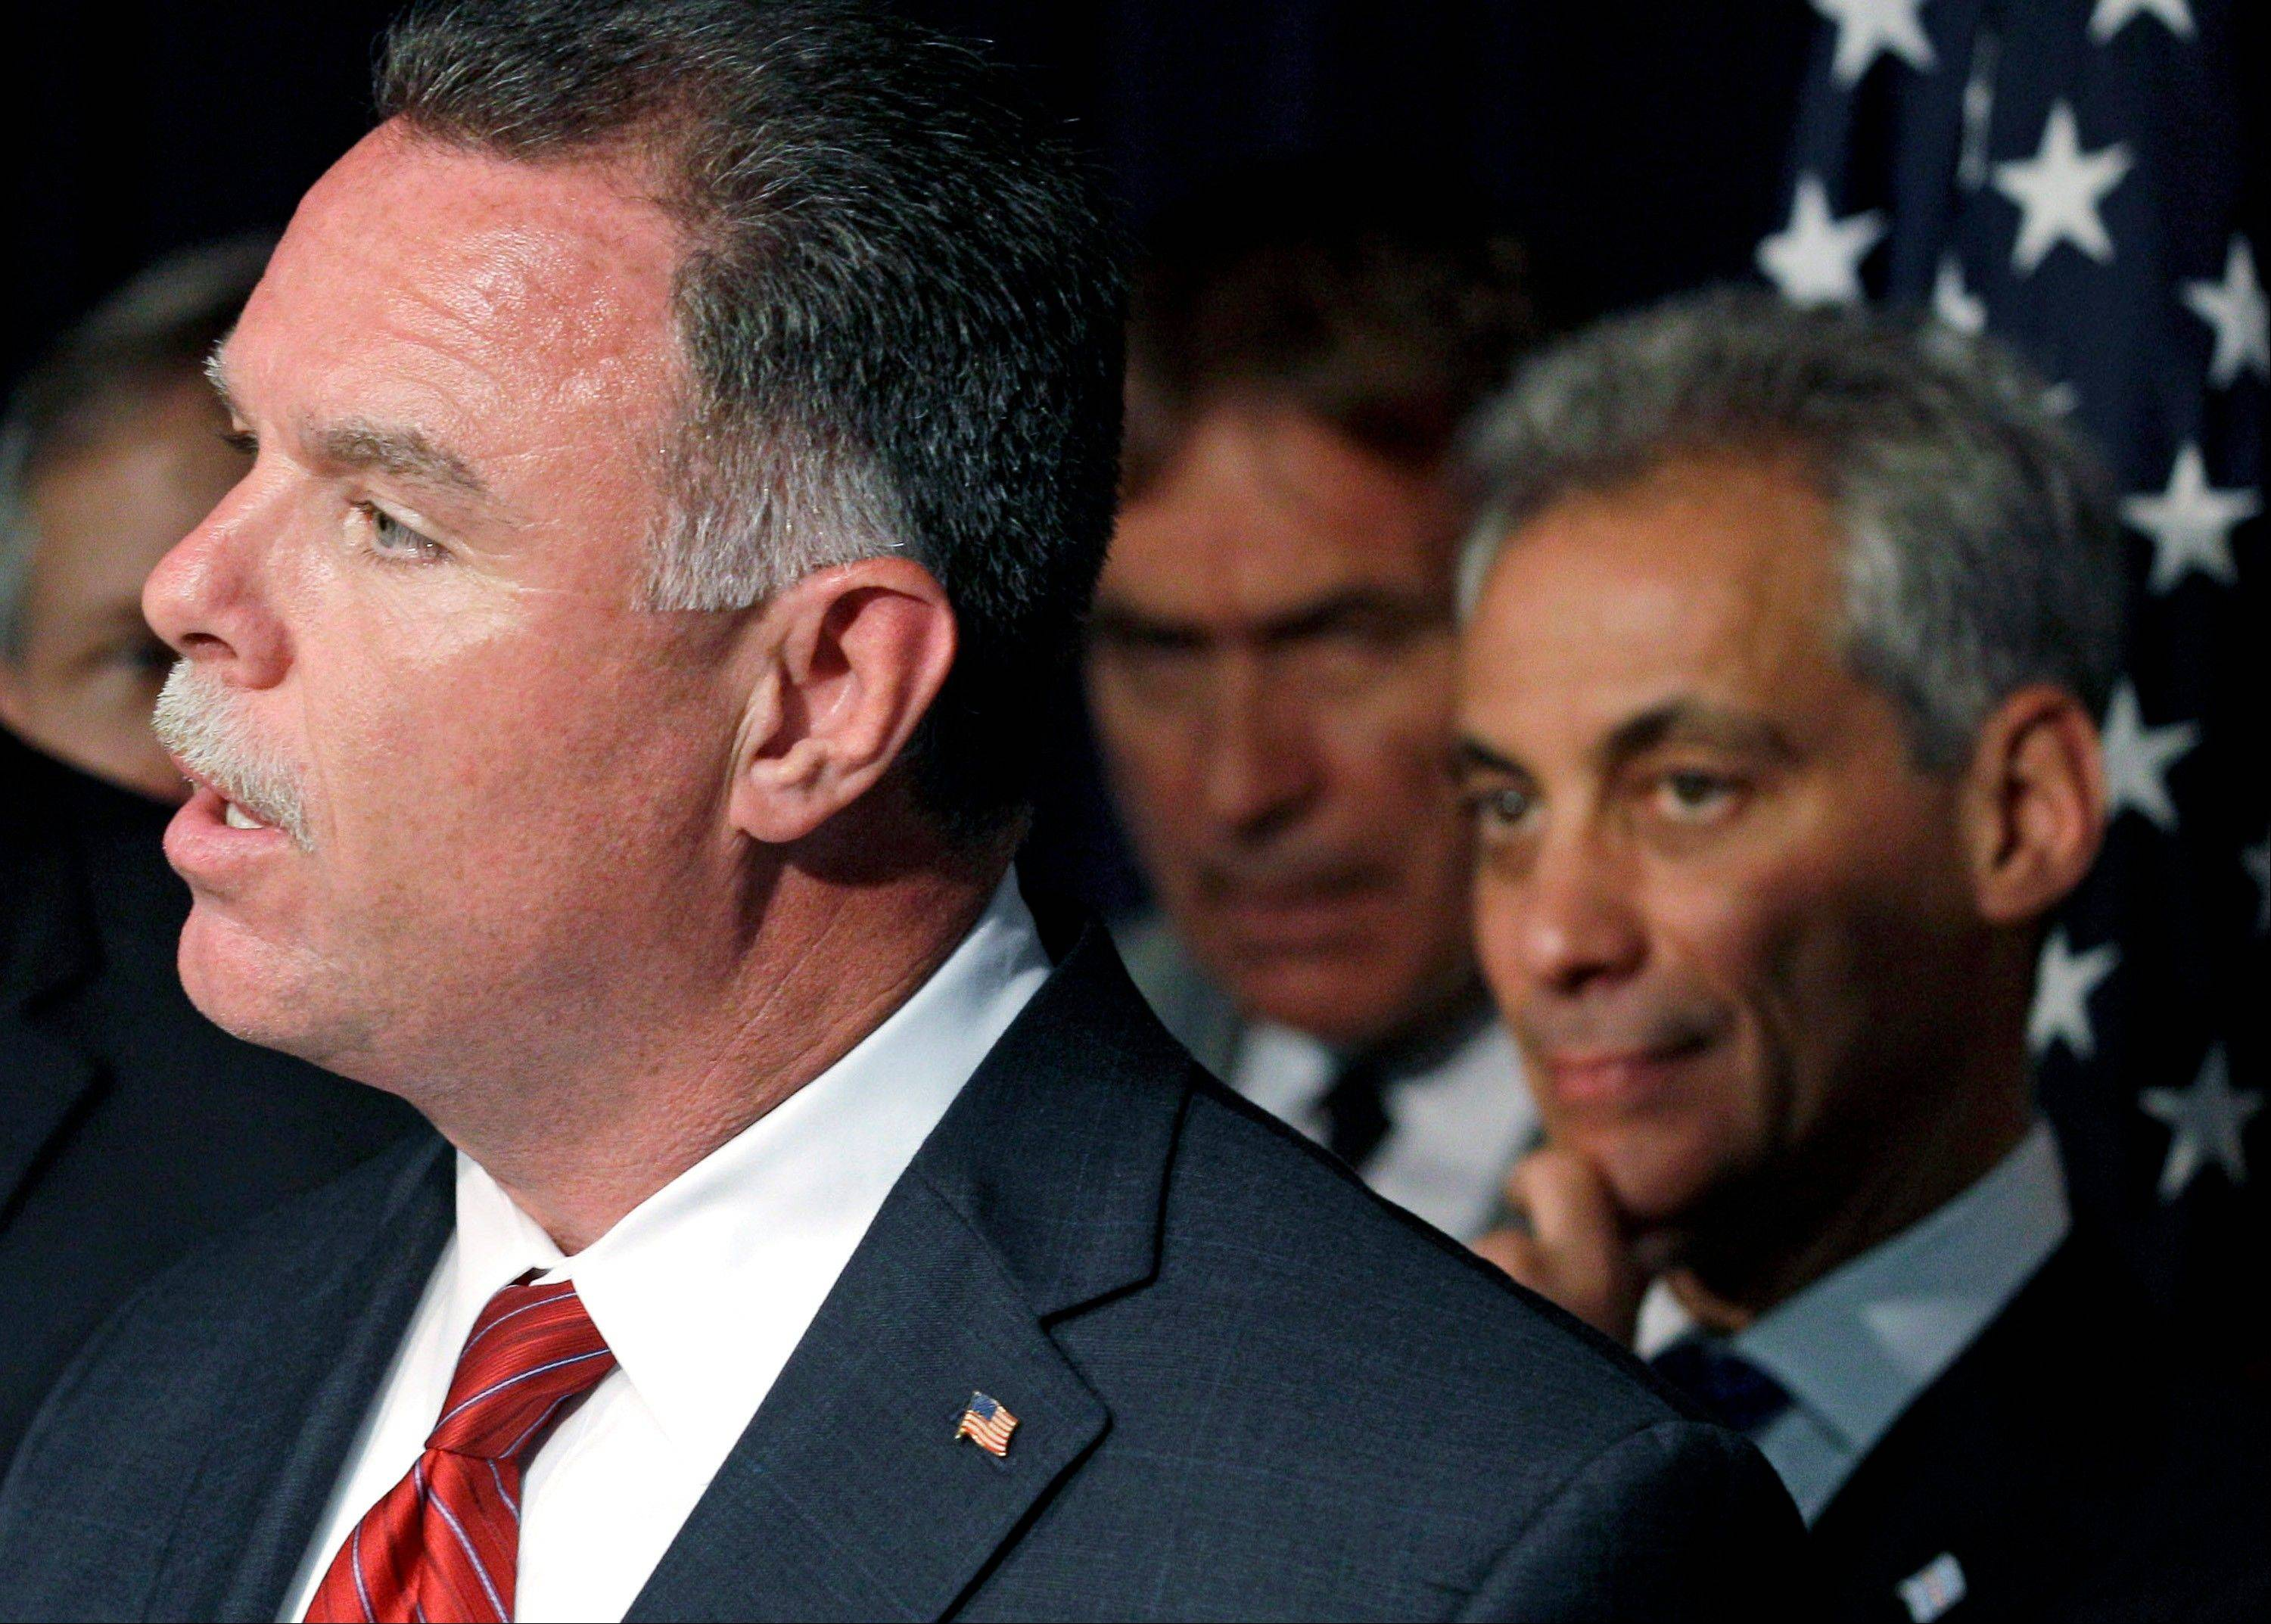 Police Superintendent Garry McCarthy, left, and Chicago Mayor Rahm Emanuel, rear, appear during a June news conference in Chicago. Emanuel has made it clear he was ready to face off with the gun lobby.